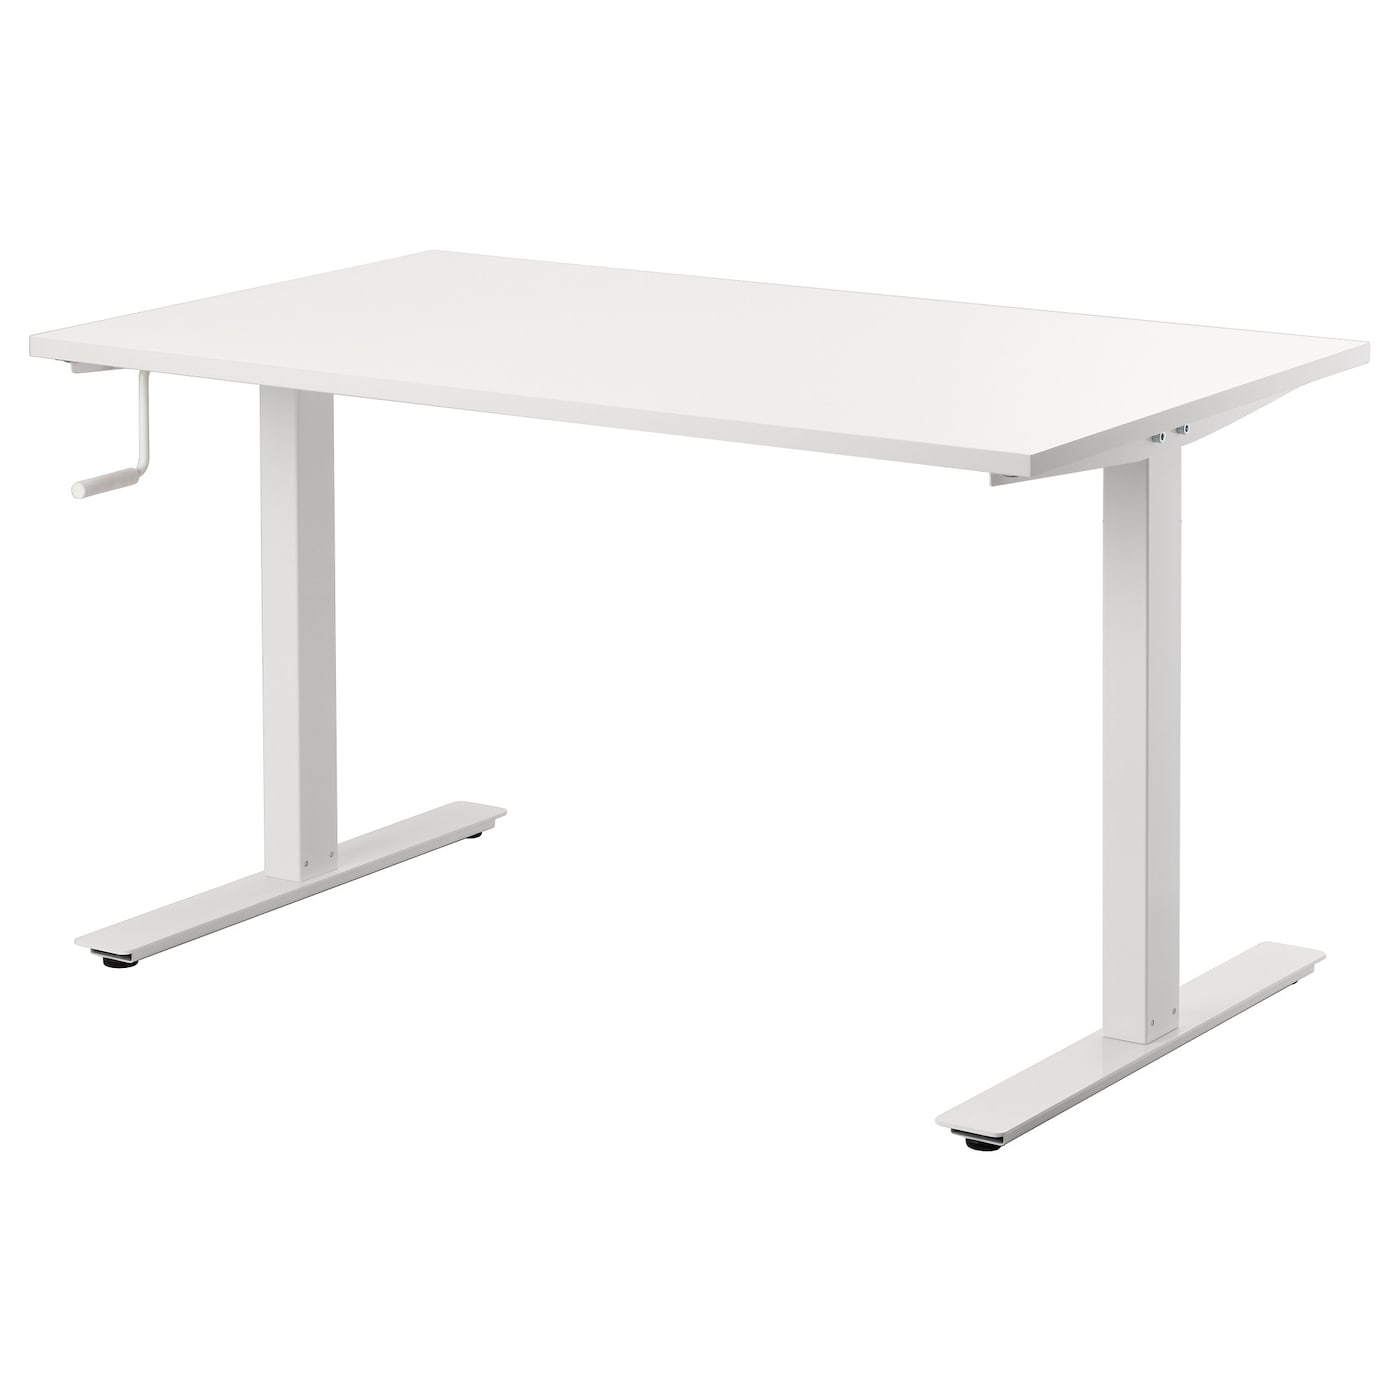 Skarsta desk sit stand white 120x70 cm ikea for Table 70 cm hauteur